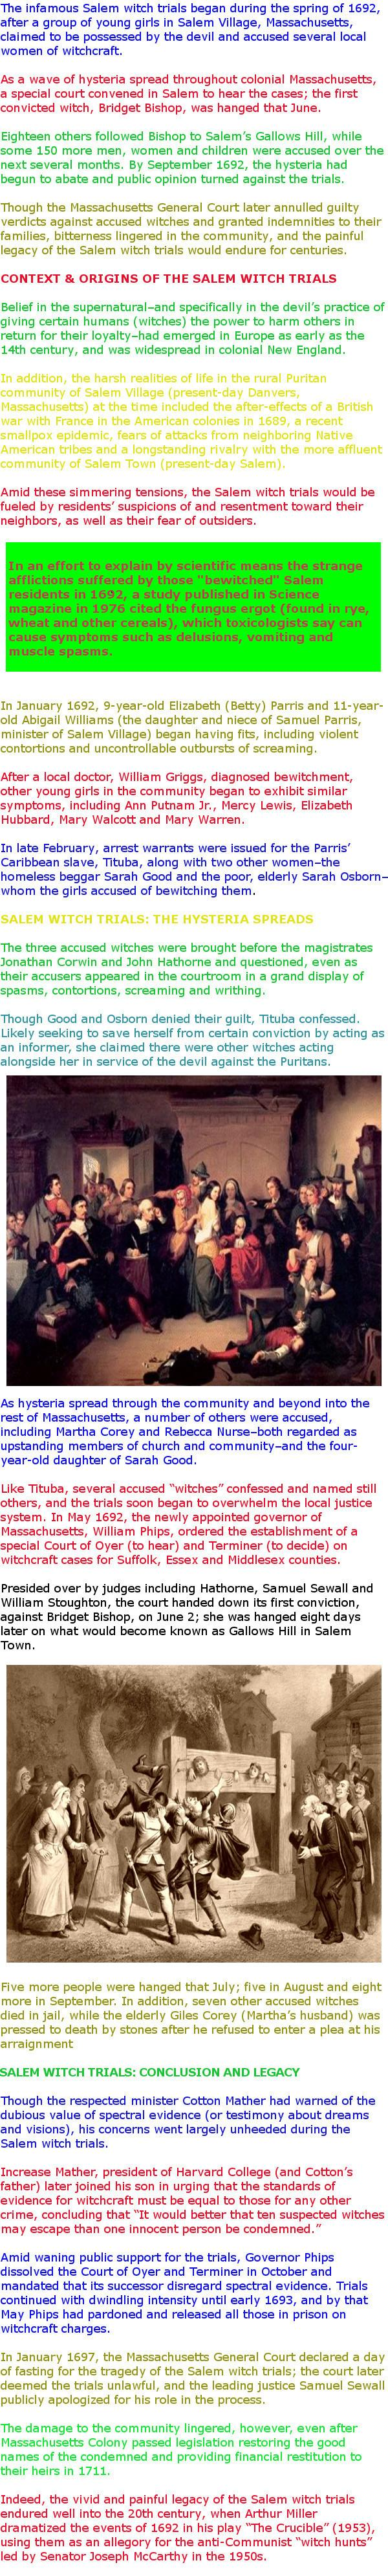 salem witch trials and forbidden knowledge An account of the salem witchcraft trials one victim of the salem witch hunt  it cannot be imagined that in a place of so much knowledge, so.